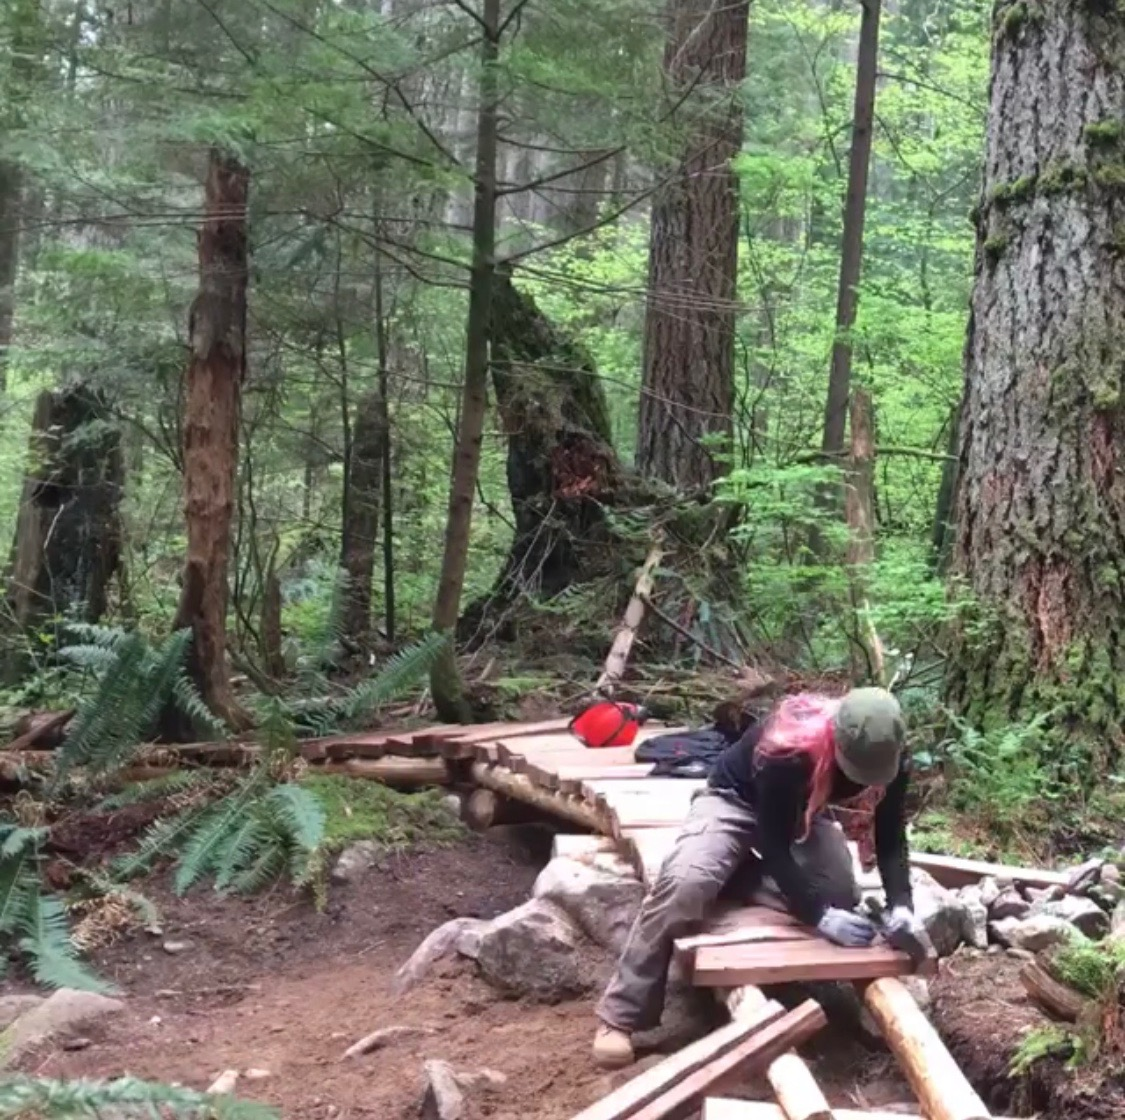 - Find me in the forest moving rocks & dirt, planting moss & ferns, or sniffing cedar. I strive to create trails that fit so naturally within the surrounding environment that it seems they appeared by magic.